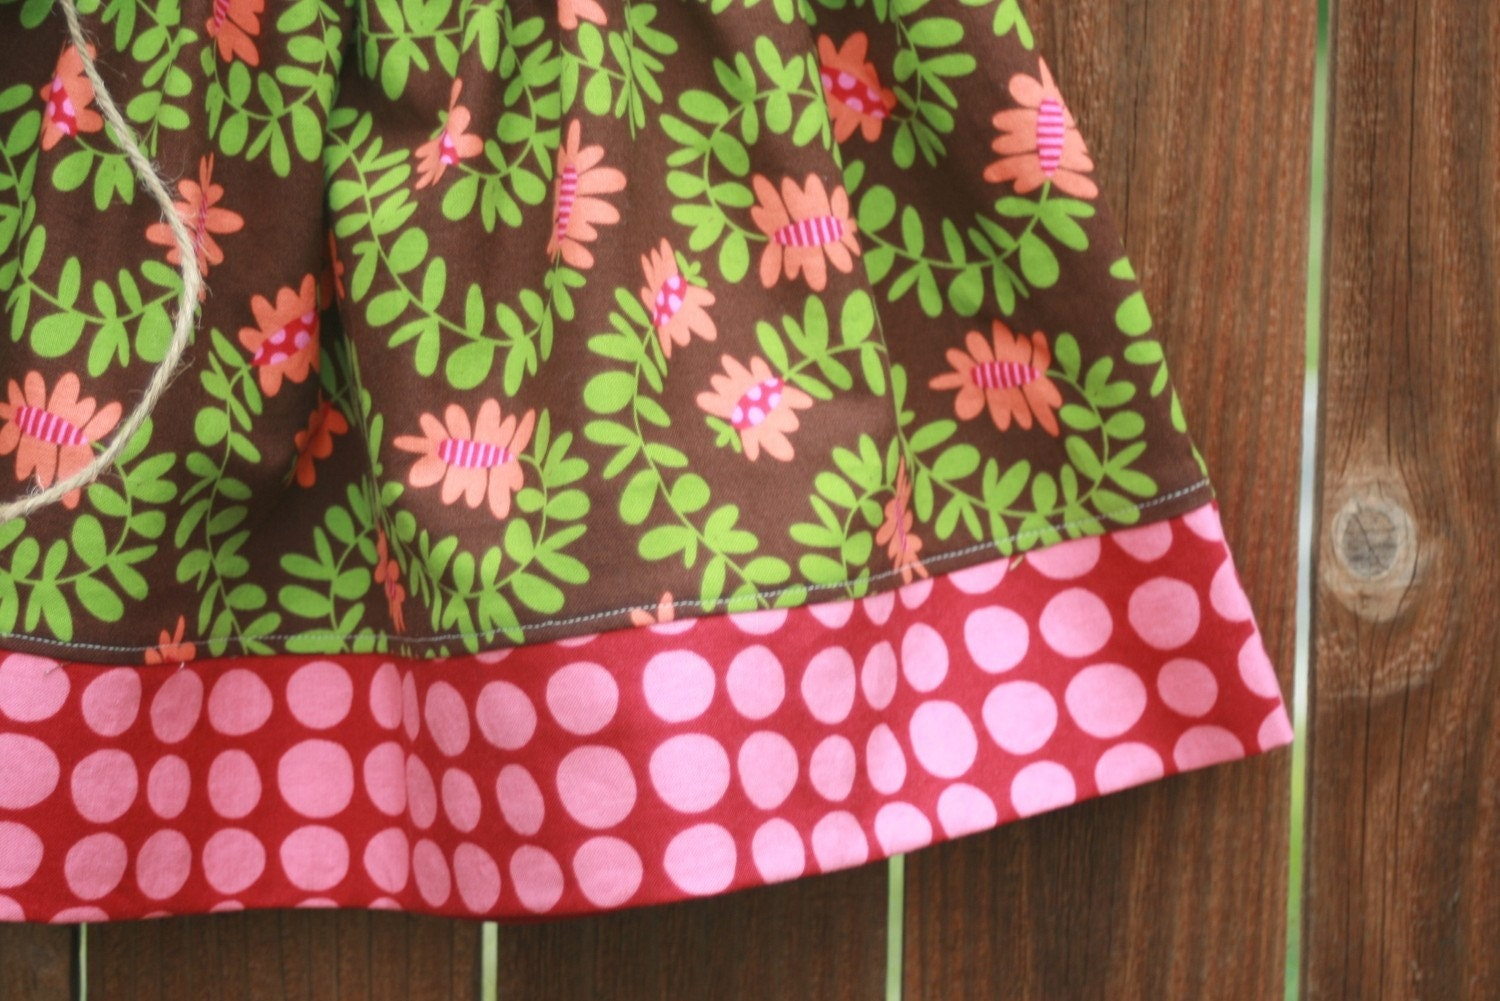 Meandering Vines Twirly Skirt - CUSTOM sizes 12 months to 8Y